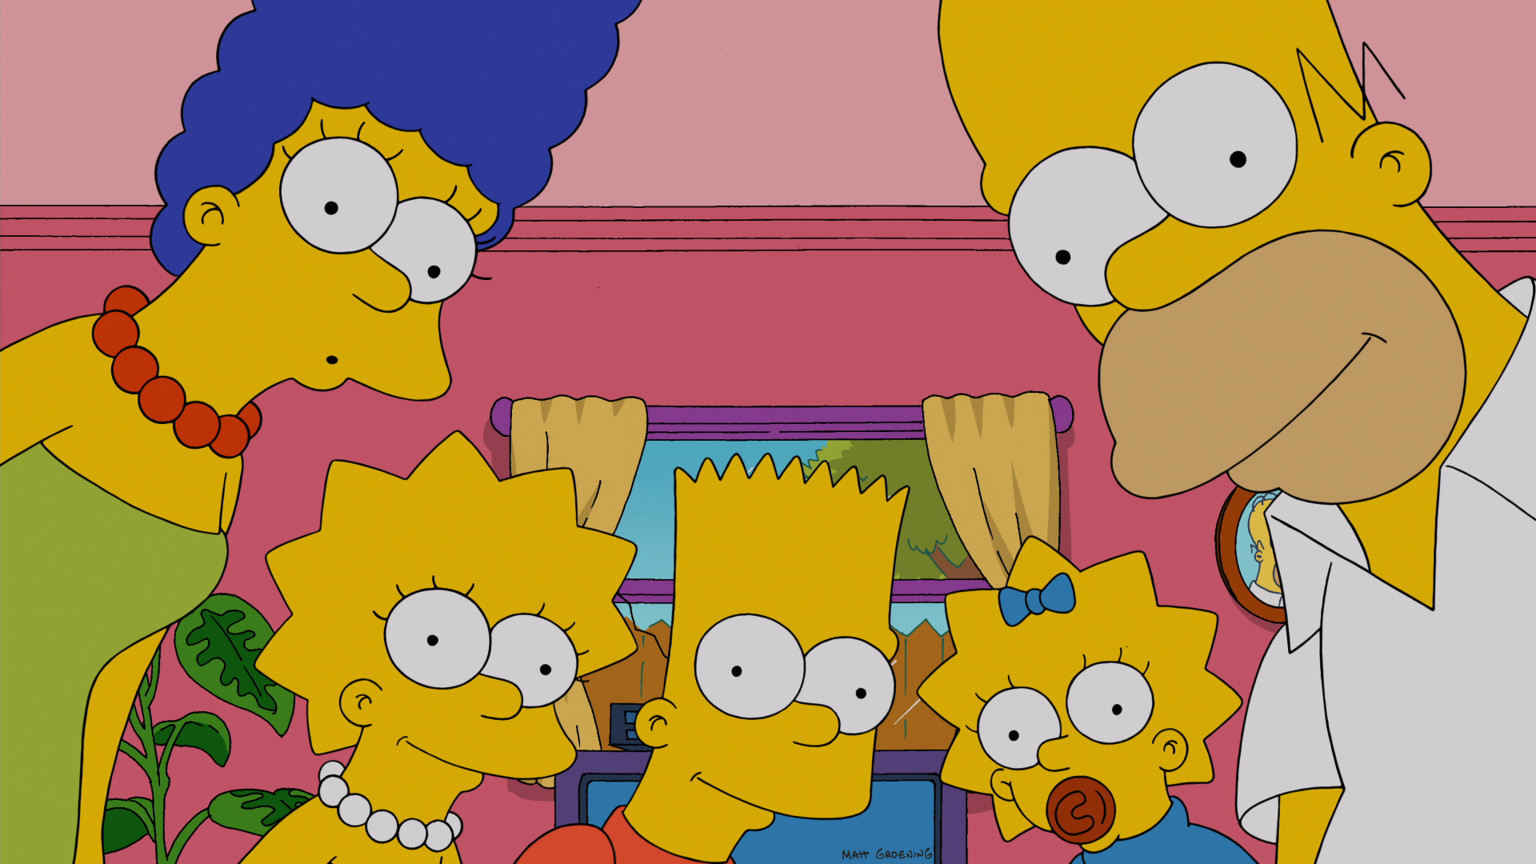 Simpsons gay character february 20